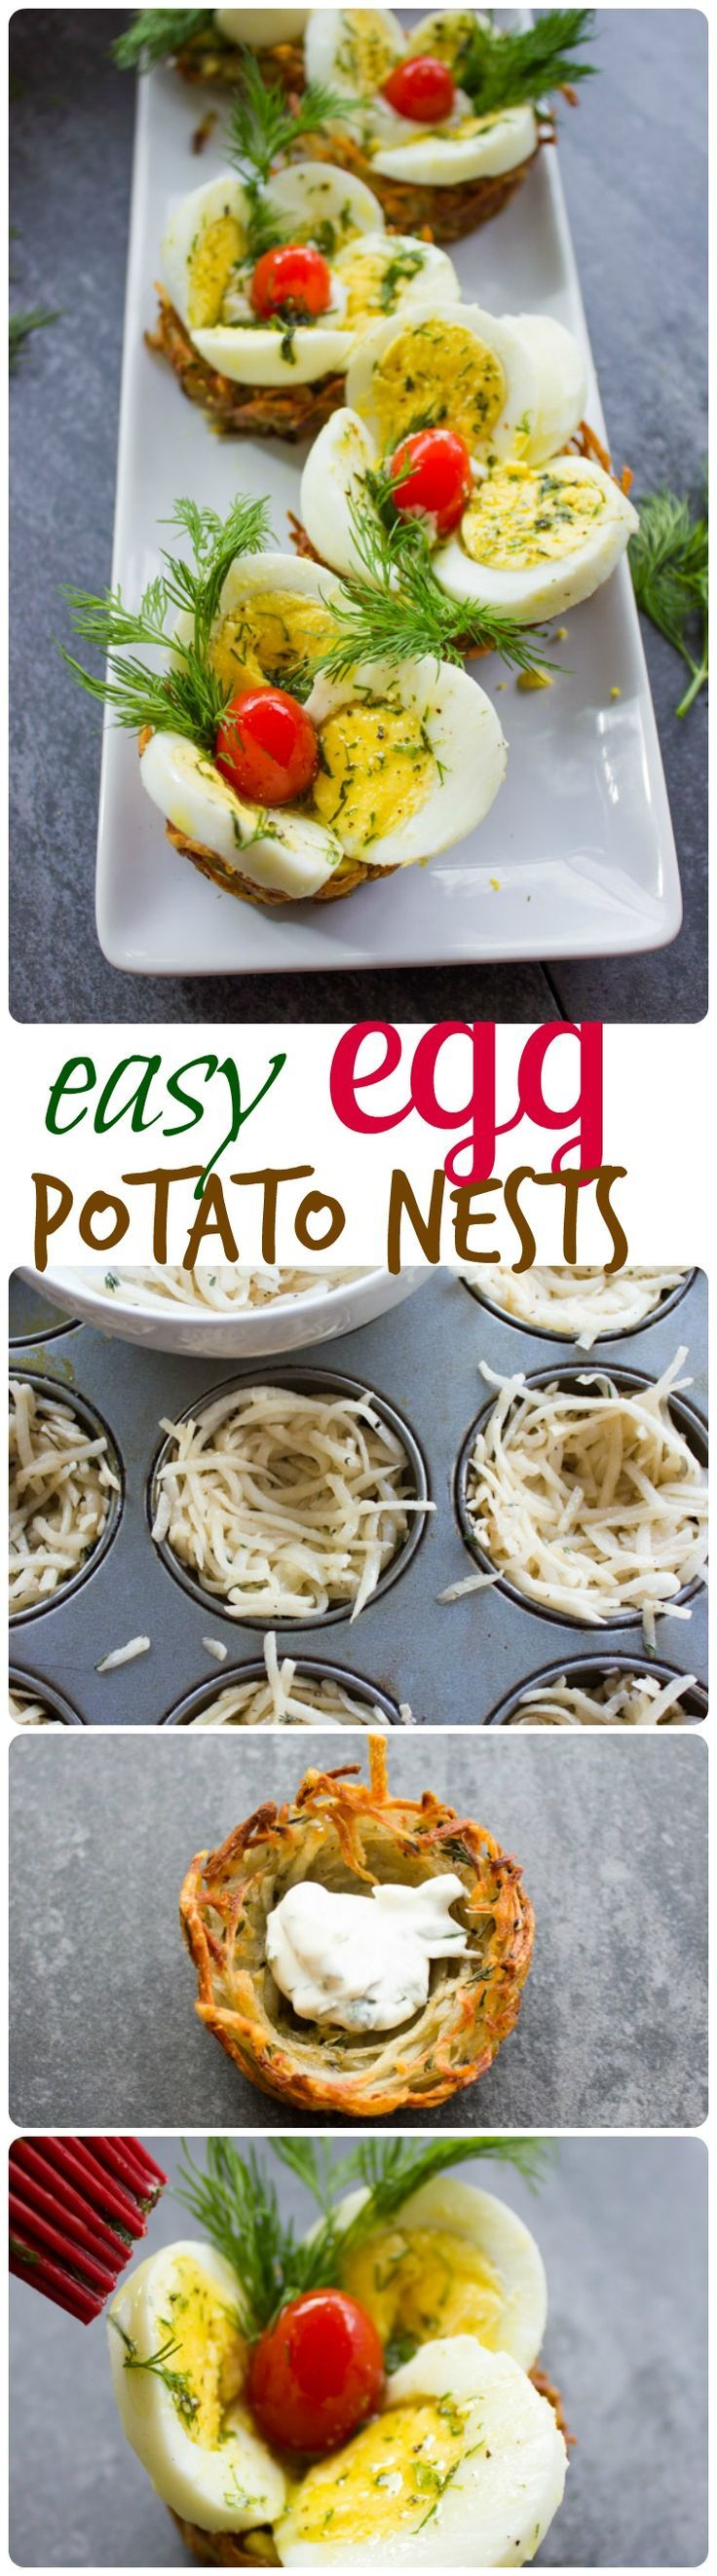 Easter Egg Tart Potato Nests. This fancy looking perfect Easter egg appetizer lis Quick and Easy, and makes a perfect brunch table! Gluten free and only 80 calories! Recipe with step by step photos to prepare this in a snap! #Eastertaining www.twopurplefigs.com